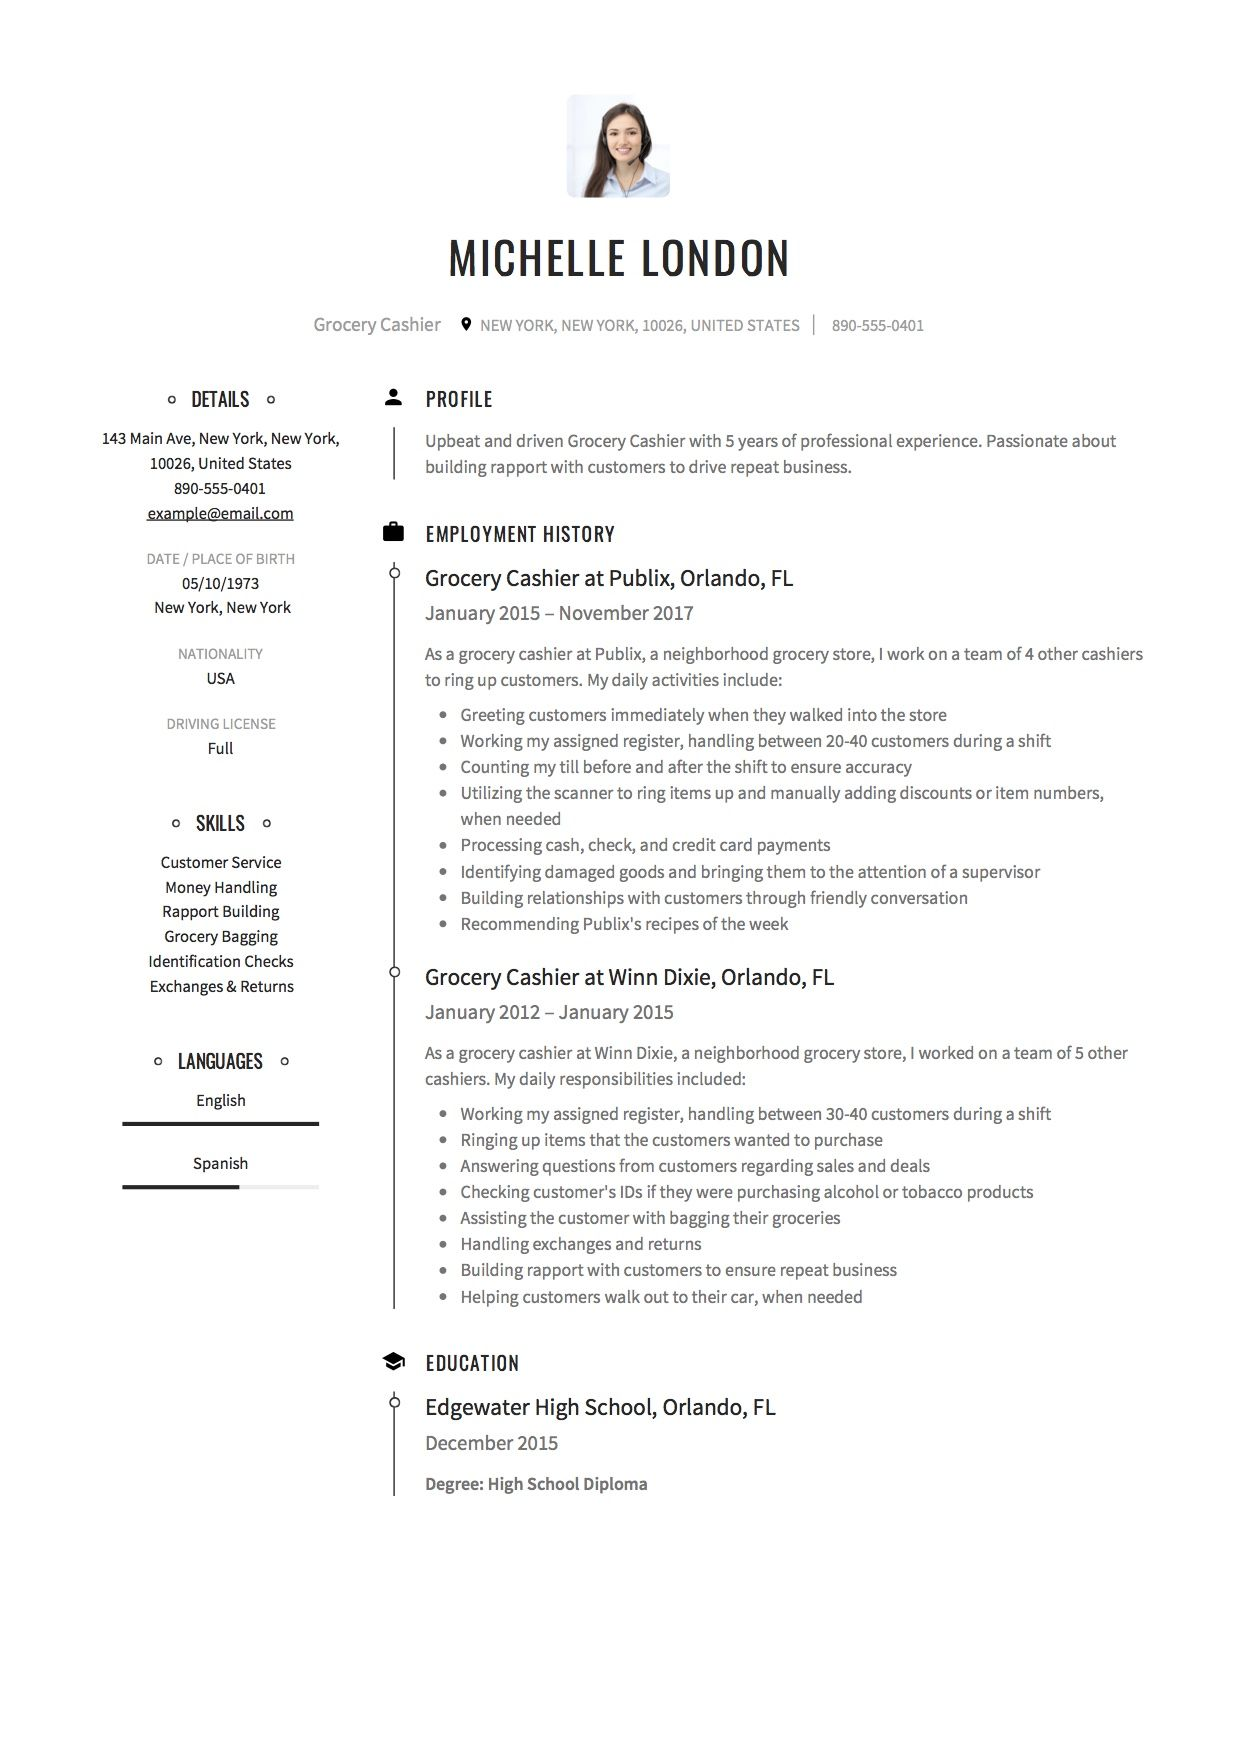 Grocery Cashier Resume Sample Free DownloadExample  Pradeep